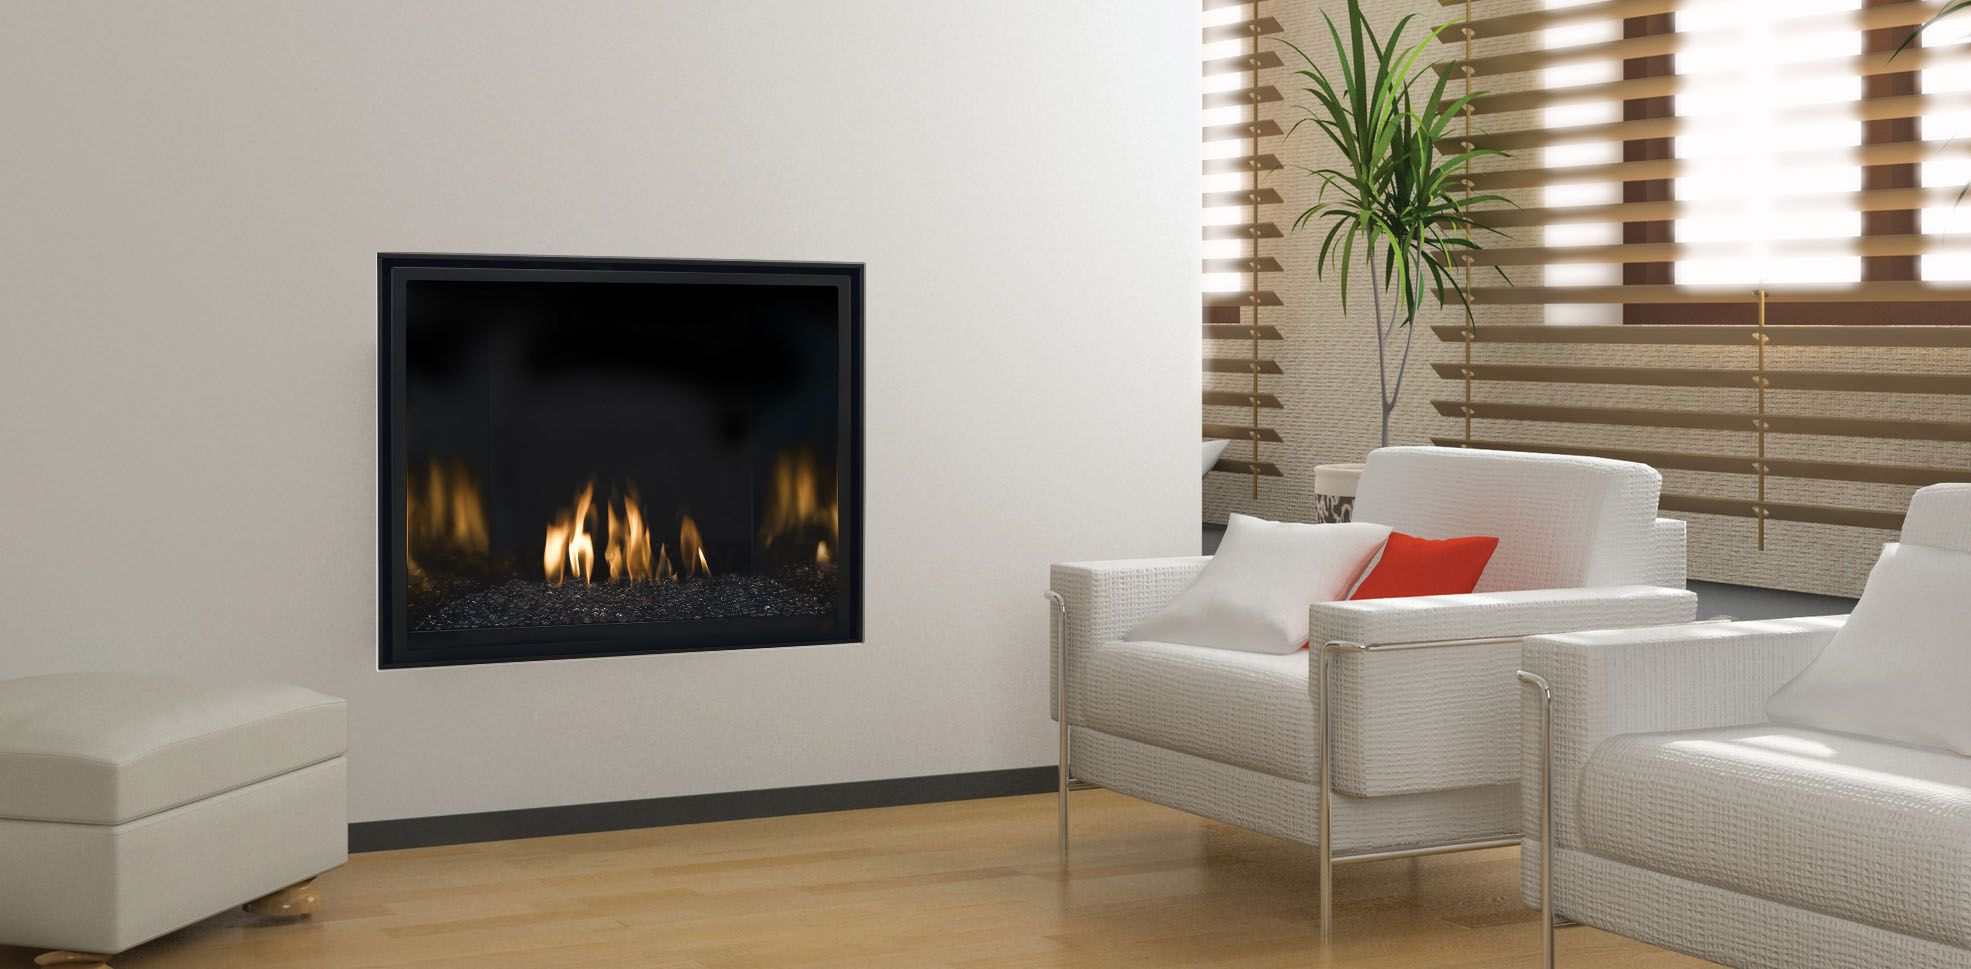 1000+ images about Fireplaces on Pinterest   Modern fireplaces ...